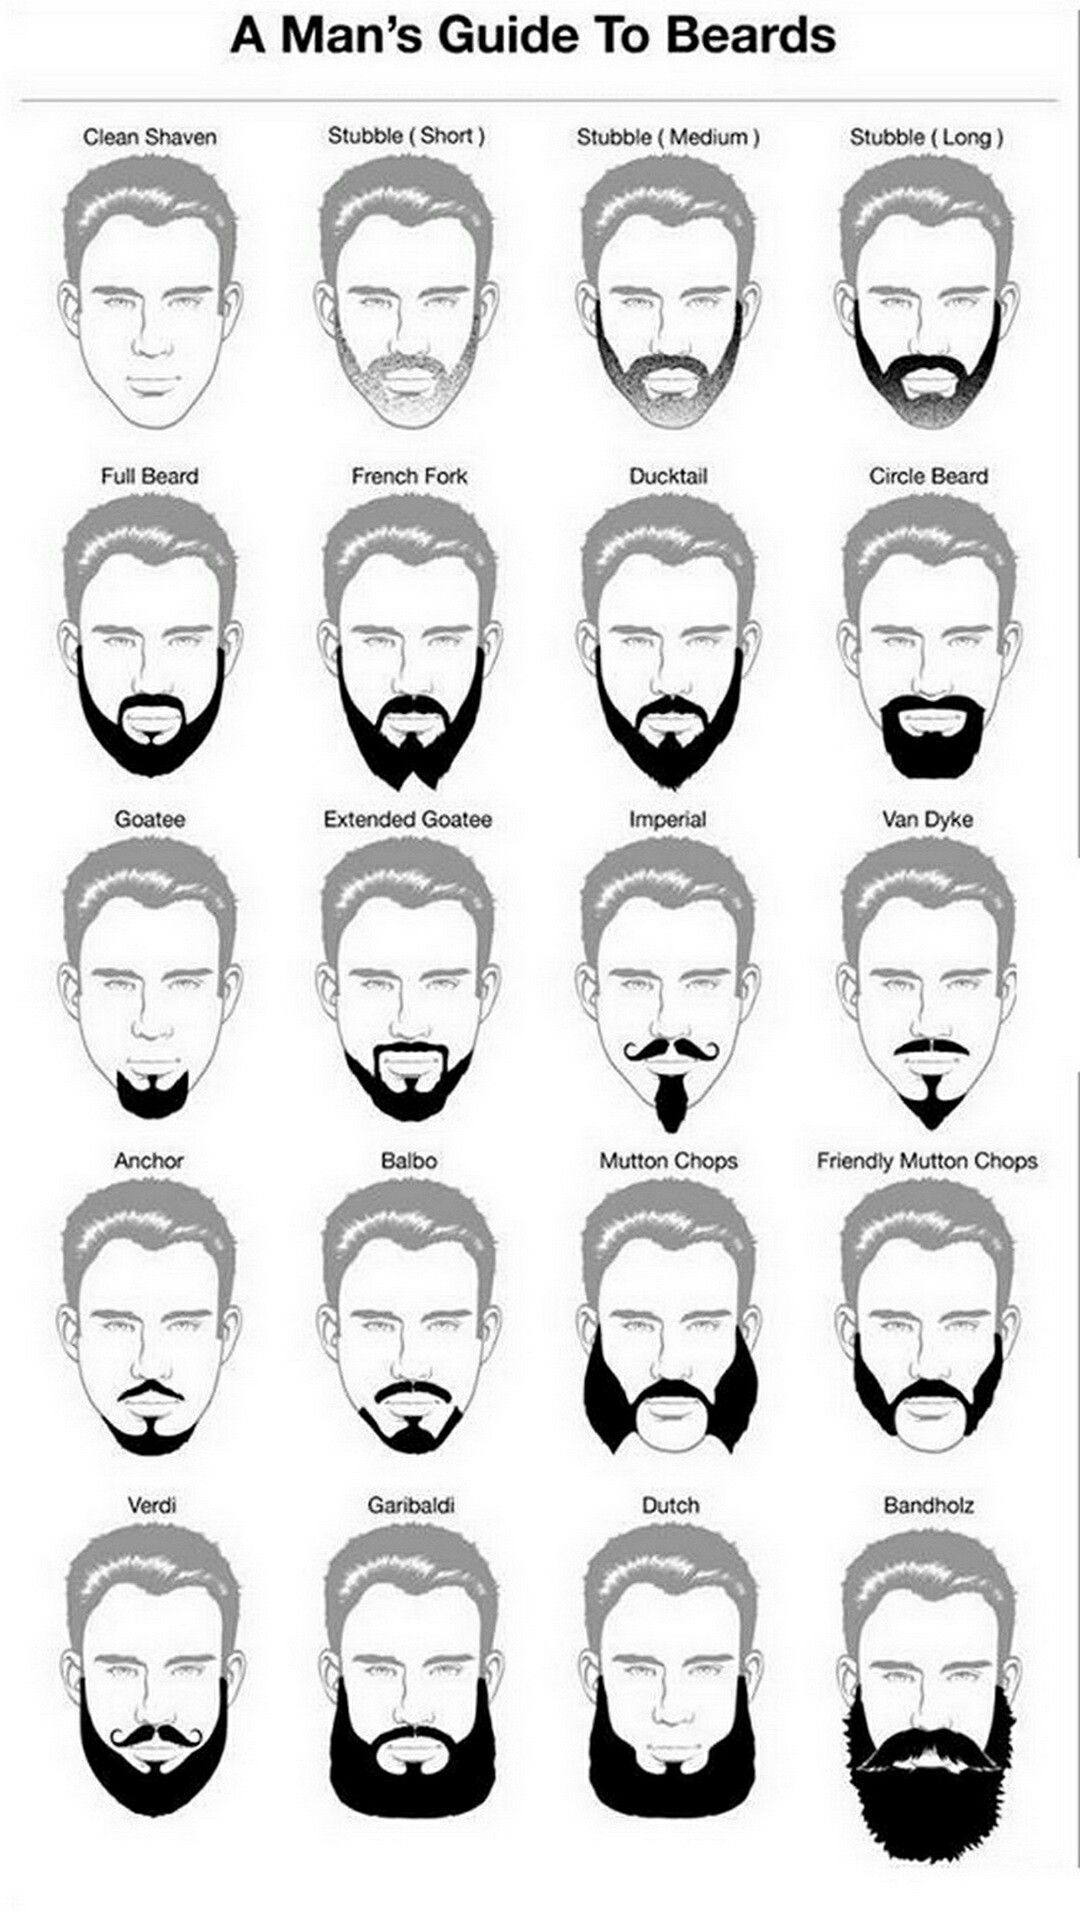 Beards 101 | Beards | Pinterest | Beard styles, Men's fashion and